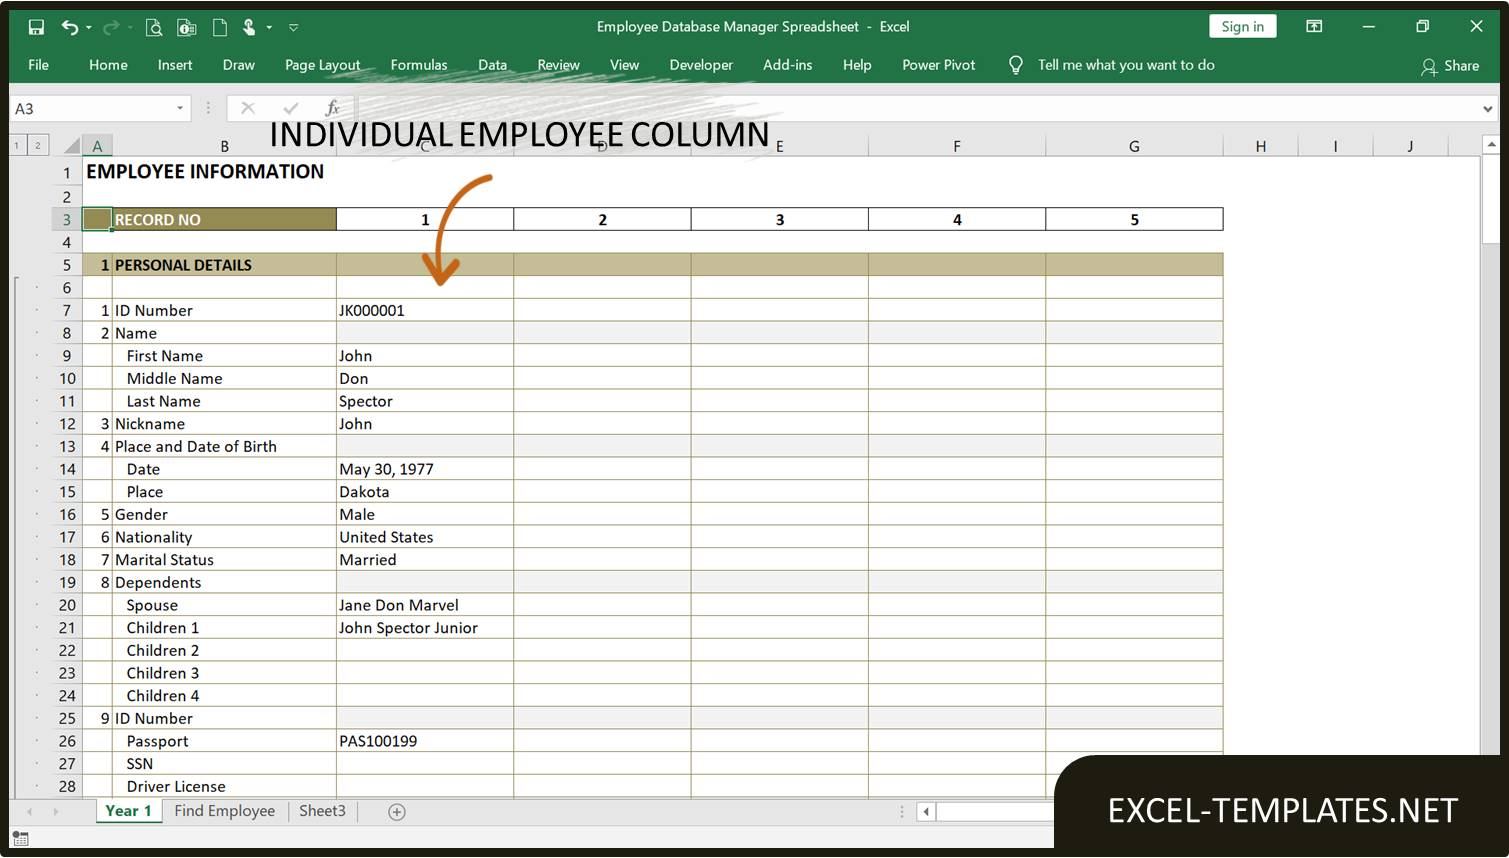 Full Size of Employee Database Manager Excel Templates Template Spreadsheet Life And Finances For